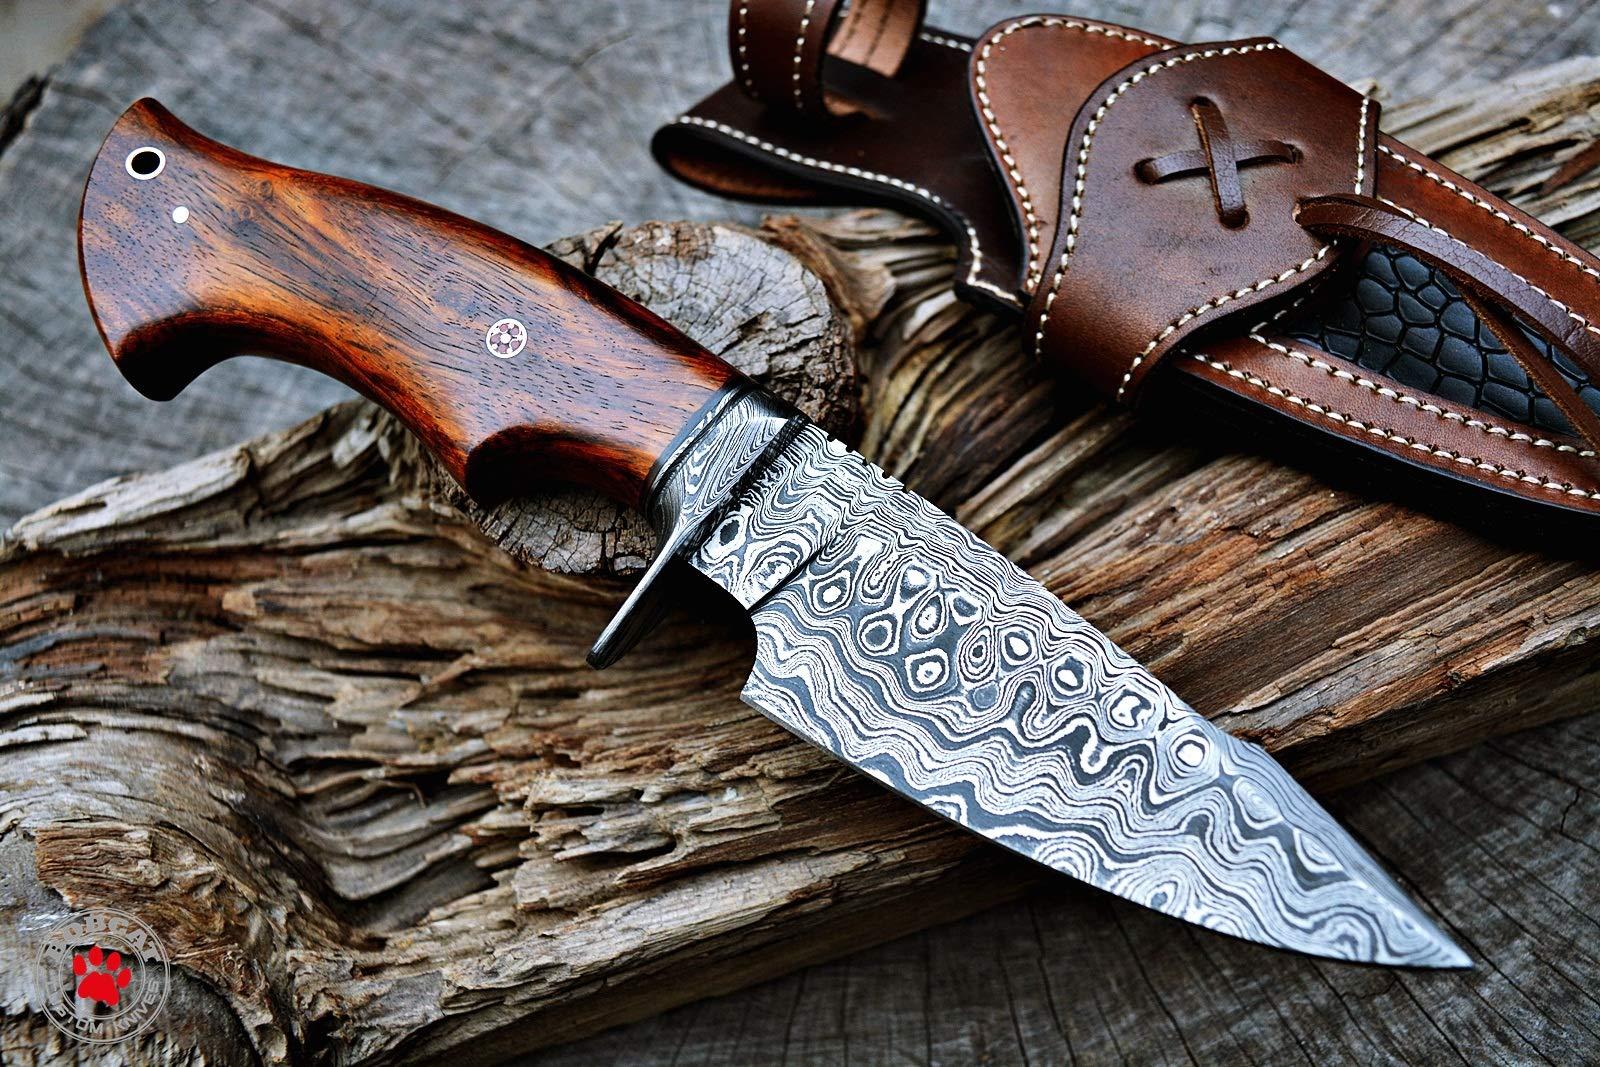 Custom Handmade Hunting Knife Bowie Knife Damascus Steel Survival Knife EDC 10'' Overall Walnut Wood with Sheath by Bobcat Knives (Image #2)